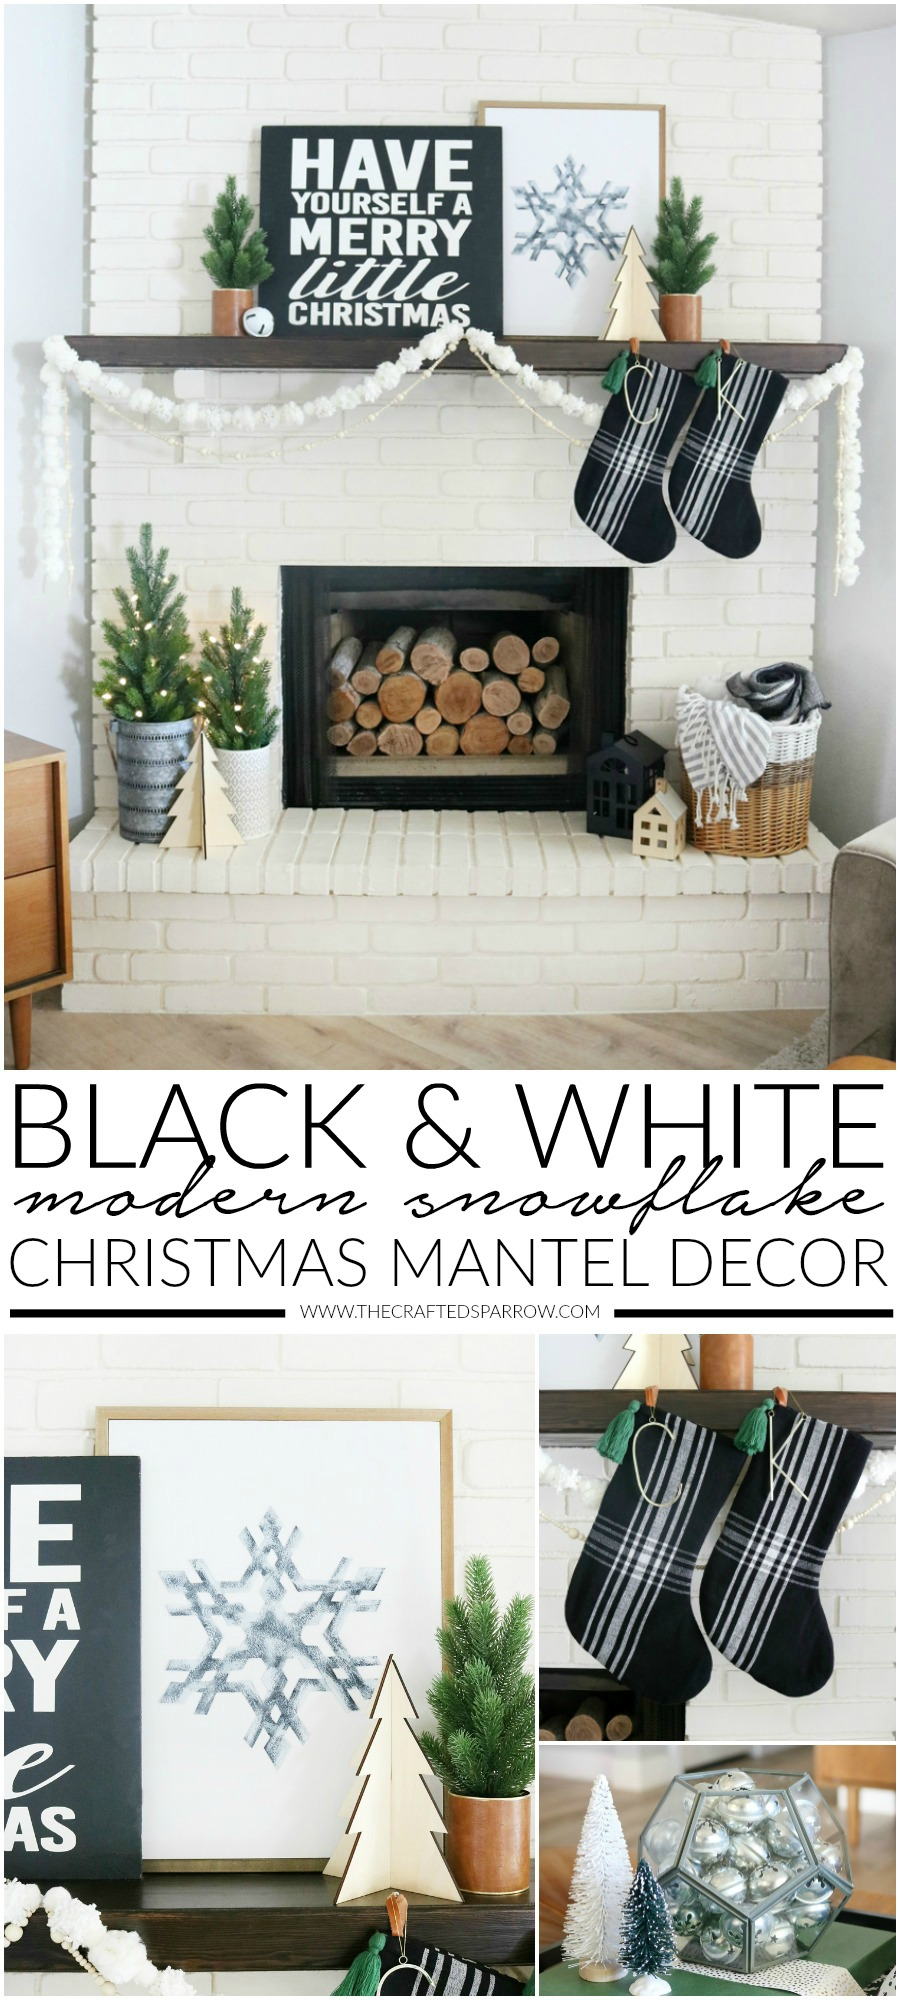 Black Amp White Modern Snowflake Christmas Mantel Decor